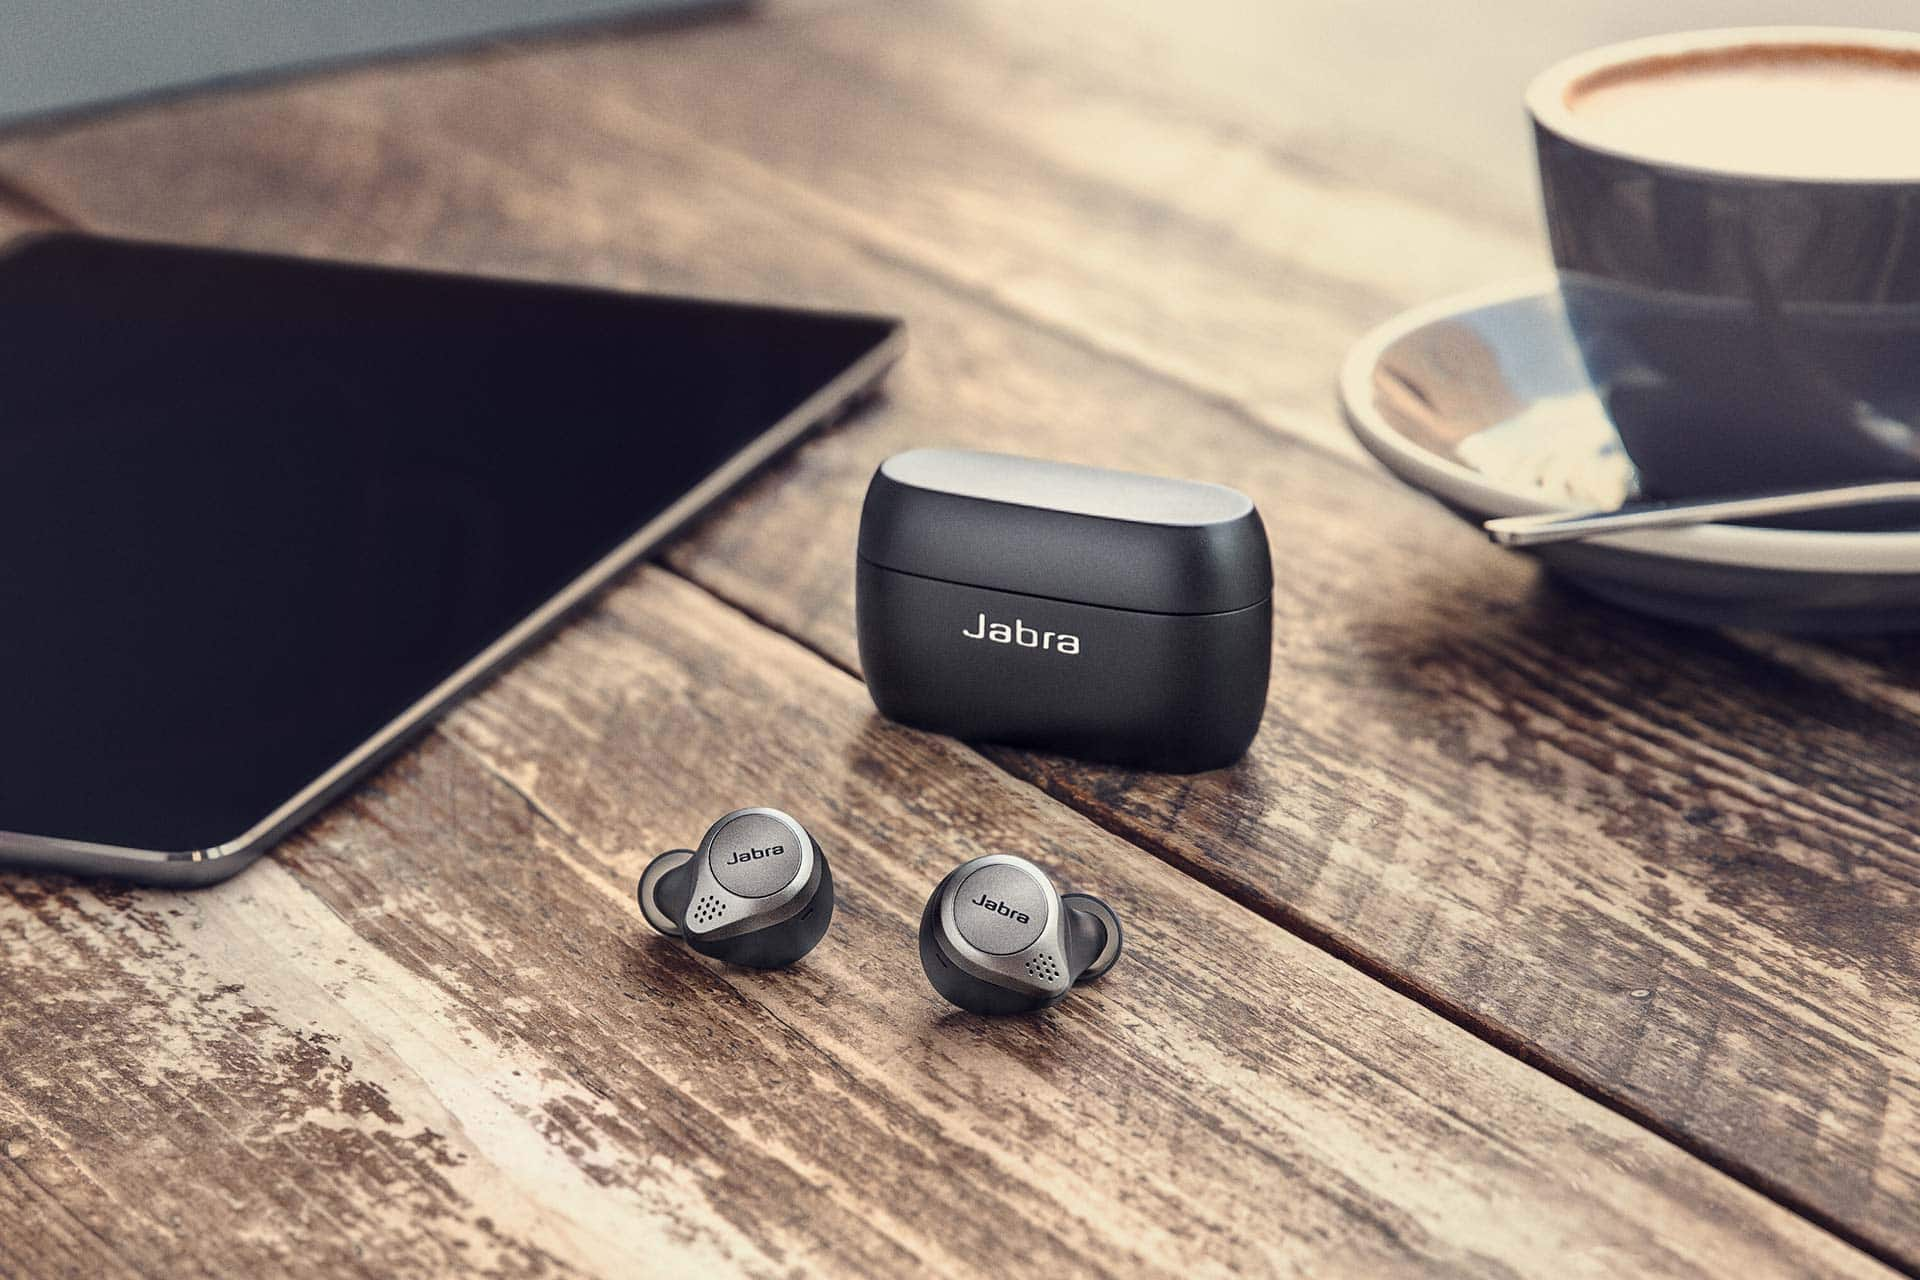 Jabra Elite 75t Review A Fitness Junkies Dream Pair Of True Wireless Earbuds With Exceptional Battery Life Just Android